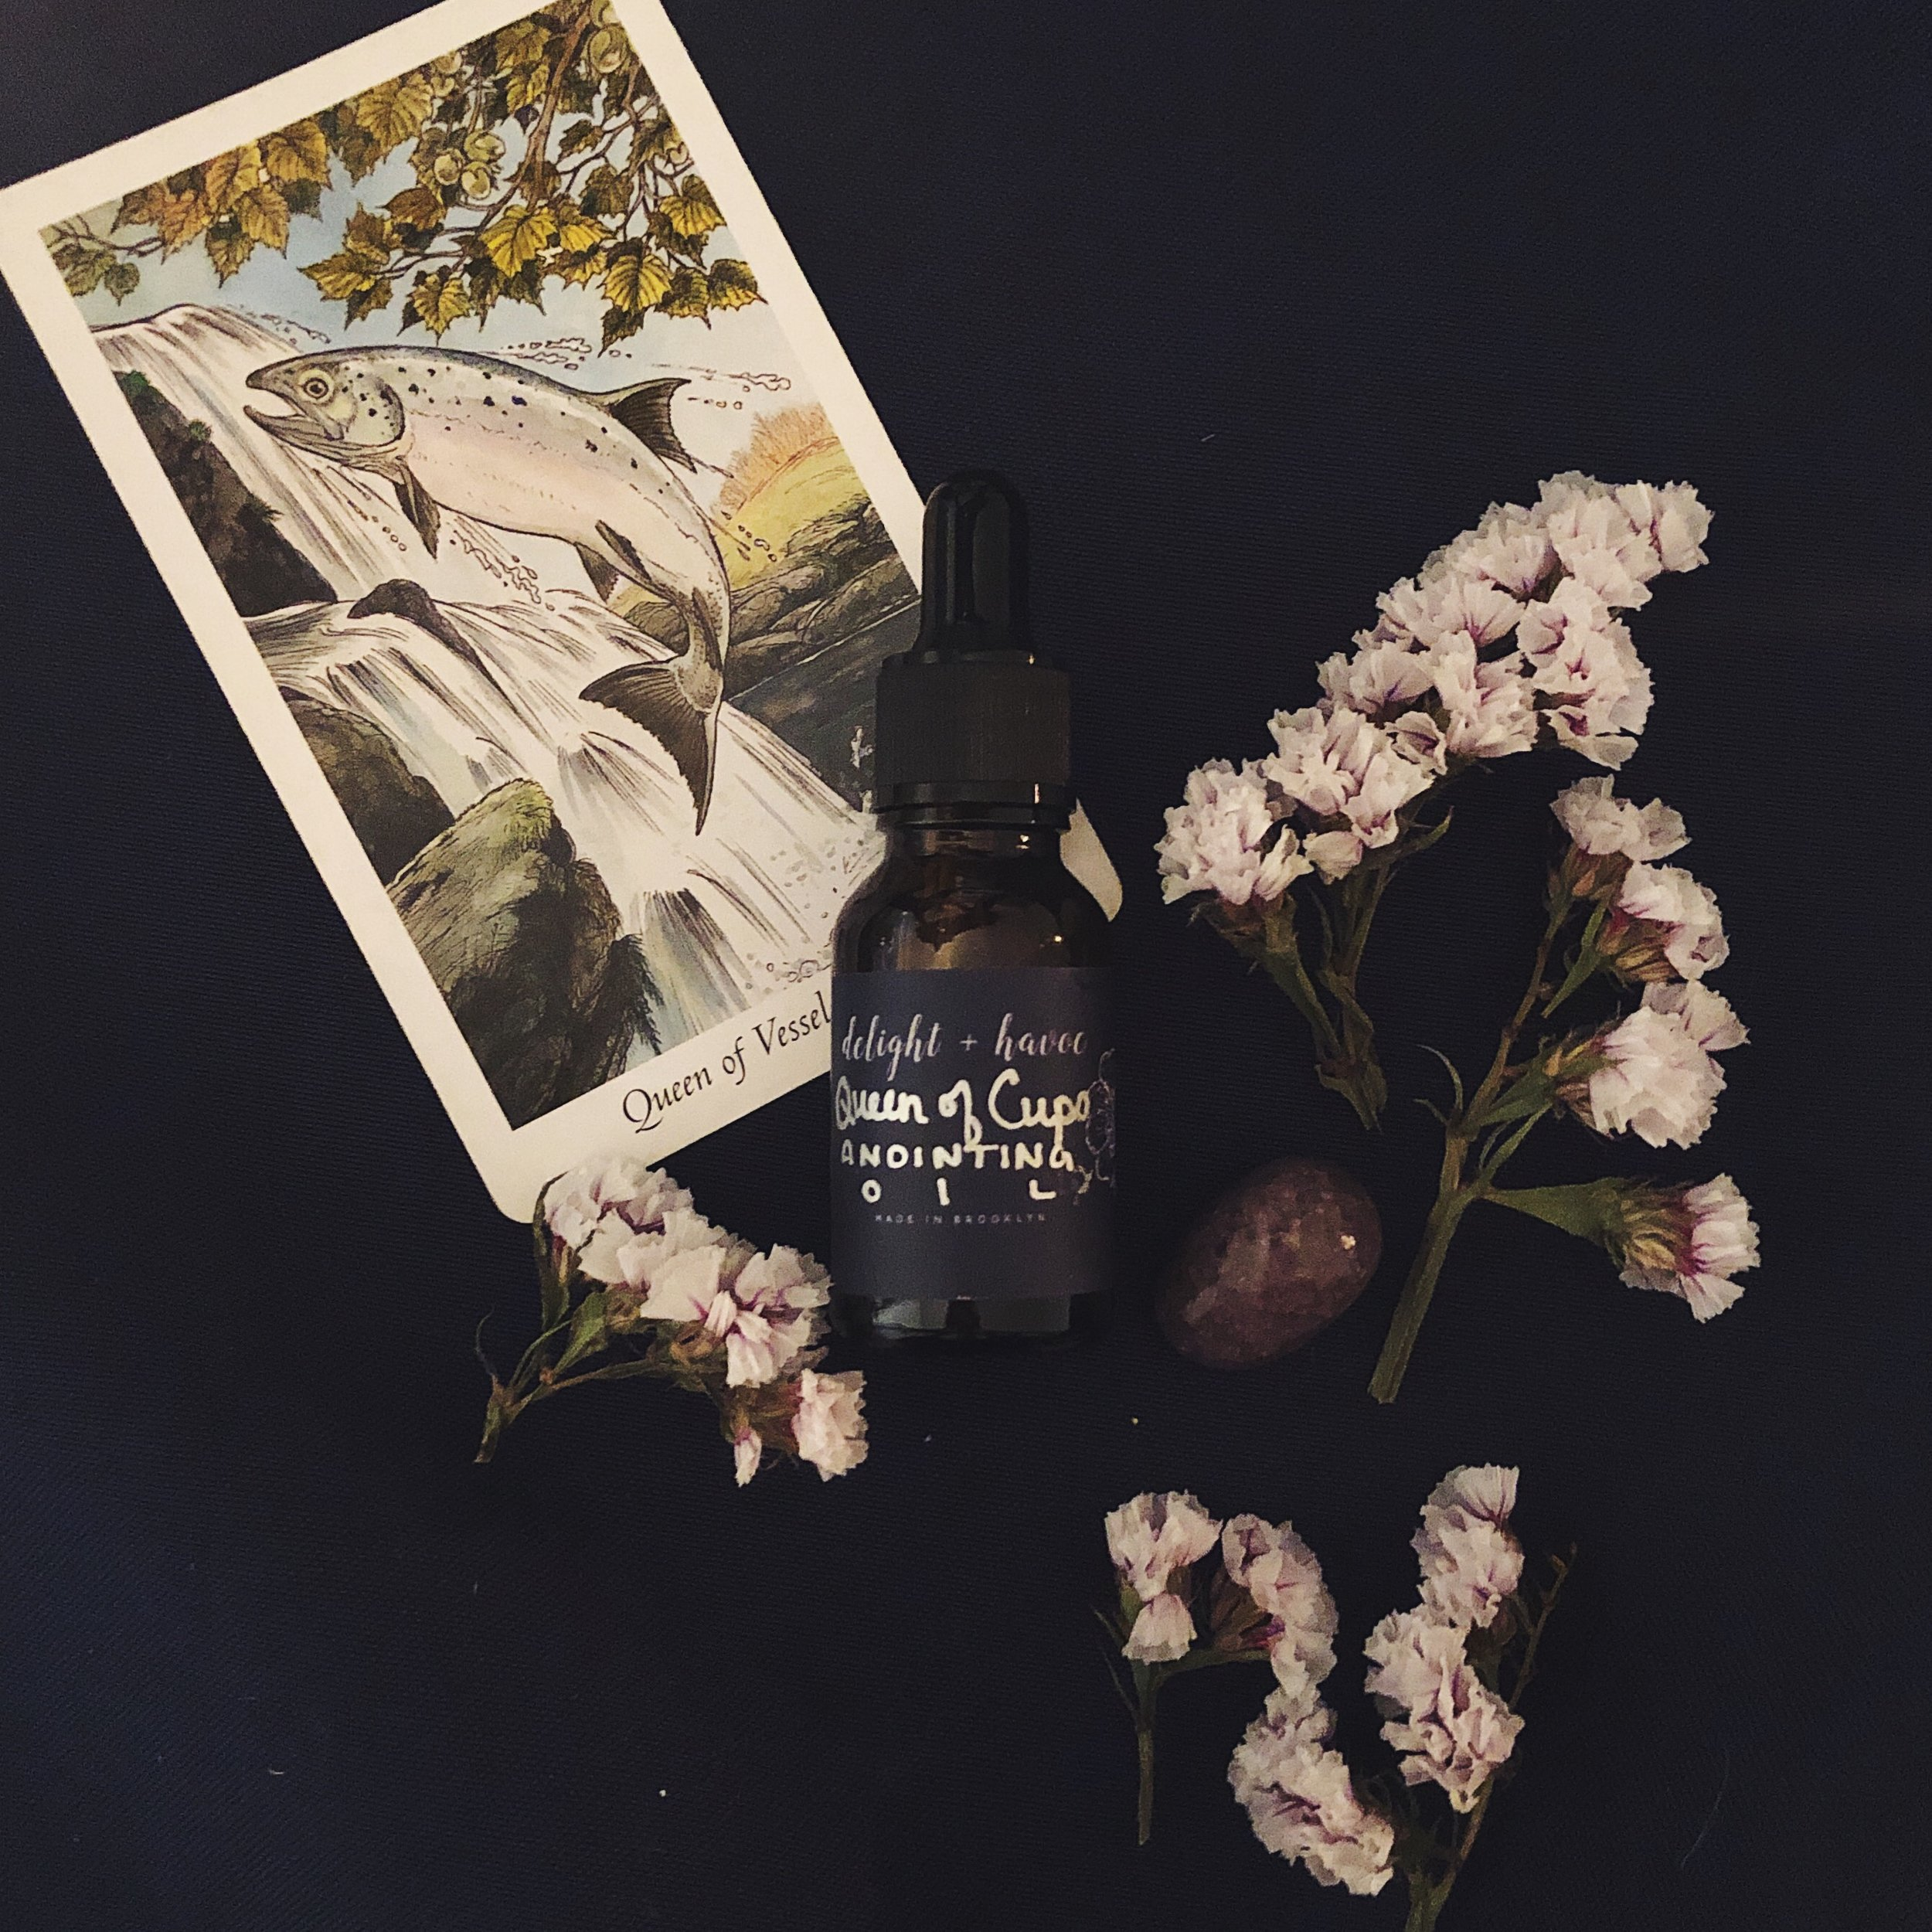 QUEEN OF CUPS - Our QUEEN OF CUPS Anointing Oil is a lunar blend, crafted in Libra Season 2018. A warm, fragrant oil to envelope your heart and give you strength and comfort in times of trouble. Recommended to empaths and intuitives for her calming, supportive energy, and to those working through stress or heartbreak.Perfect for:- Heart Healing & Fortification- Courage- Empathic Protection & Support